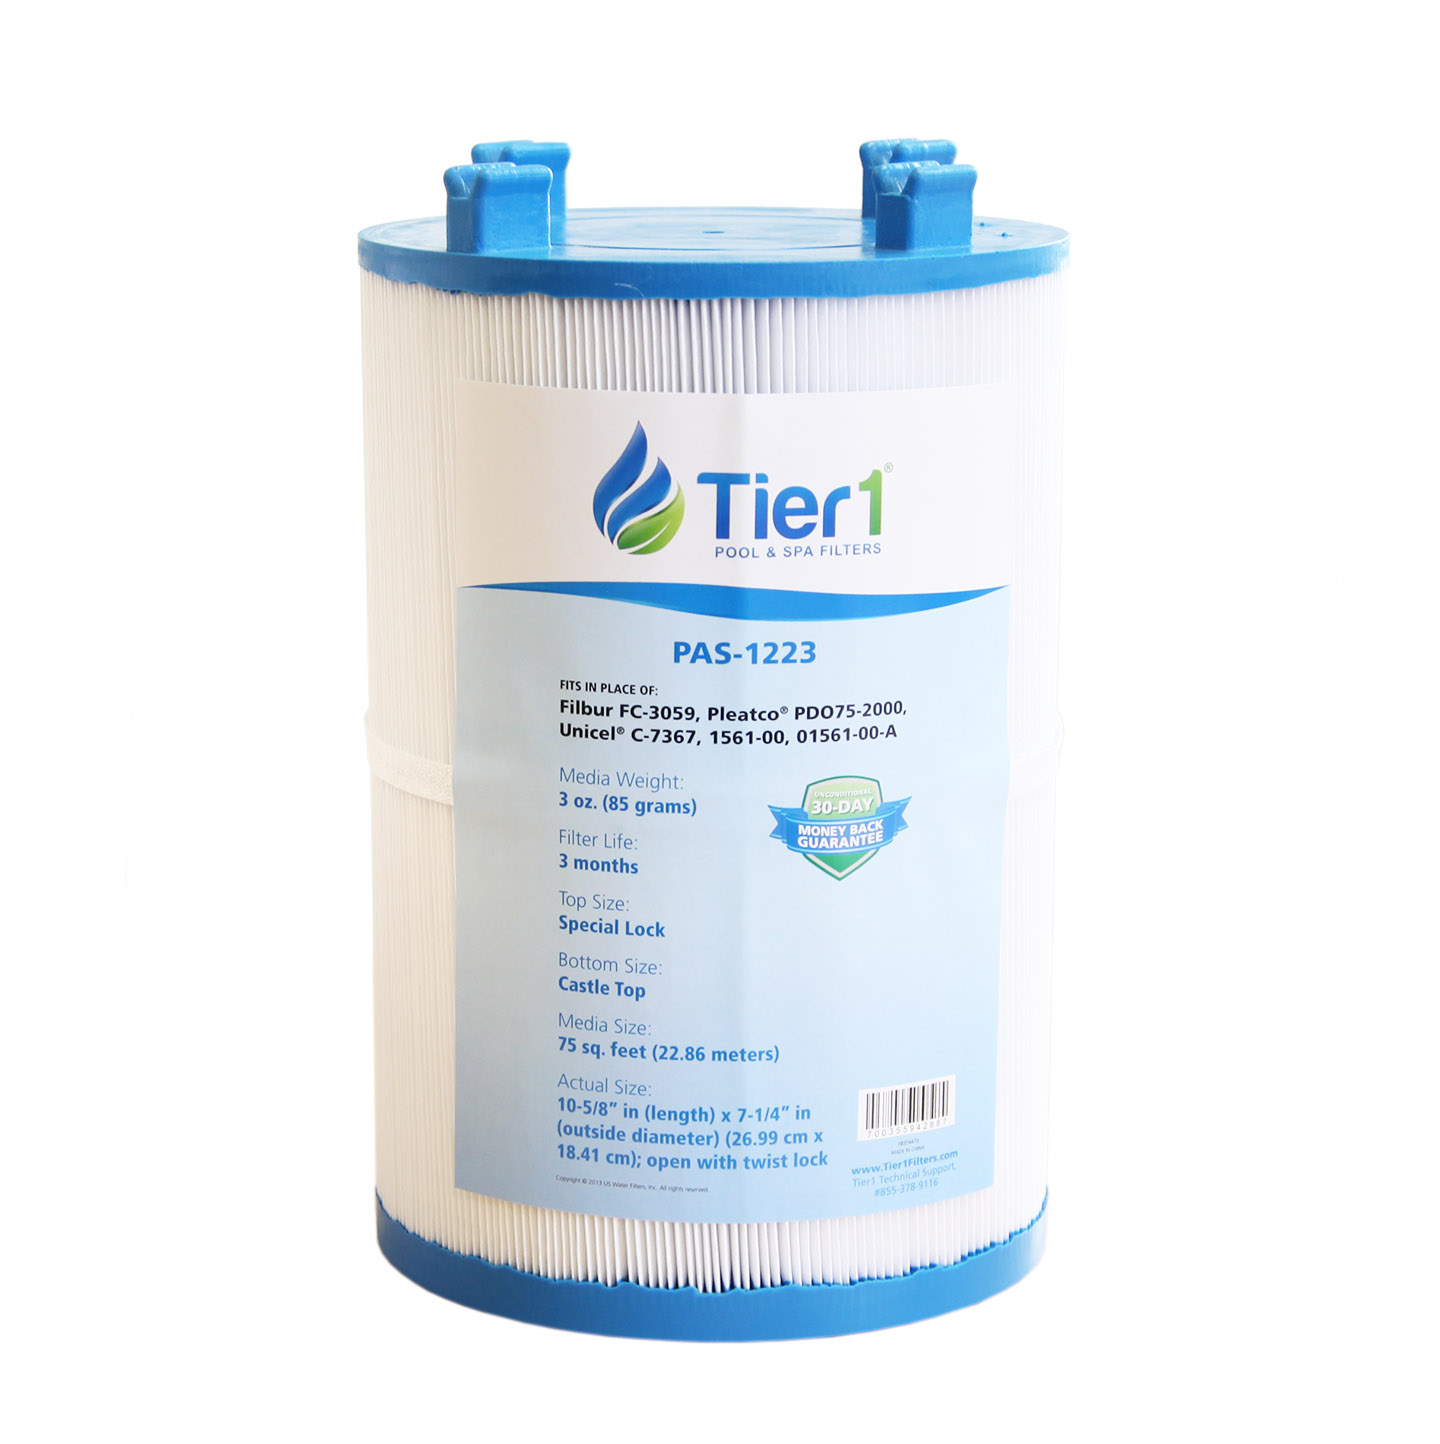 Tier1 Replacement for Dimension One 1561-00, Pleatco PDO75-2000, Filbur FC-3059, Unicel C-7367 Spa Filter Cartridge for Dimension One Spas